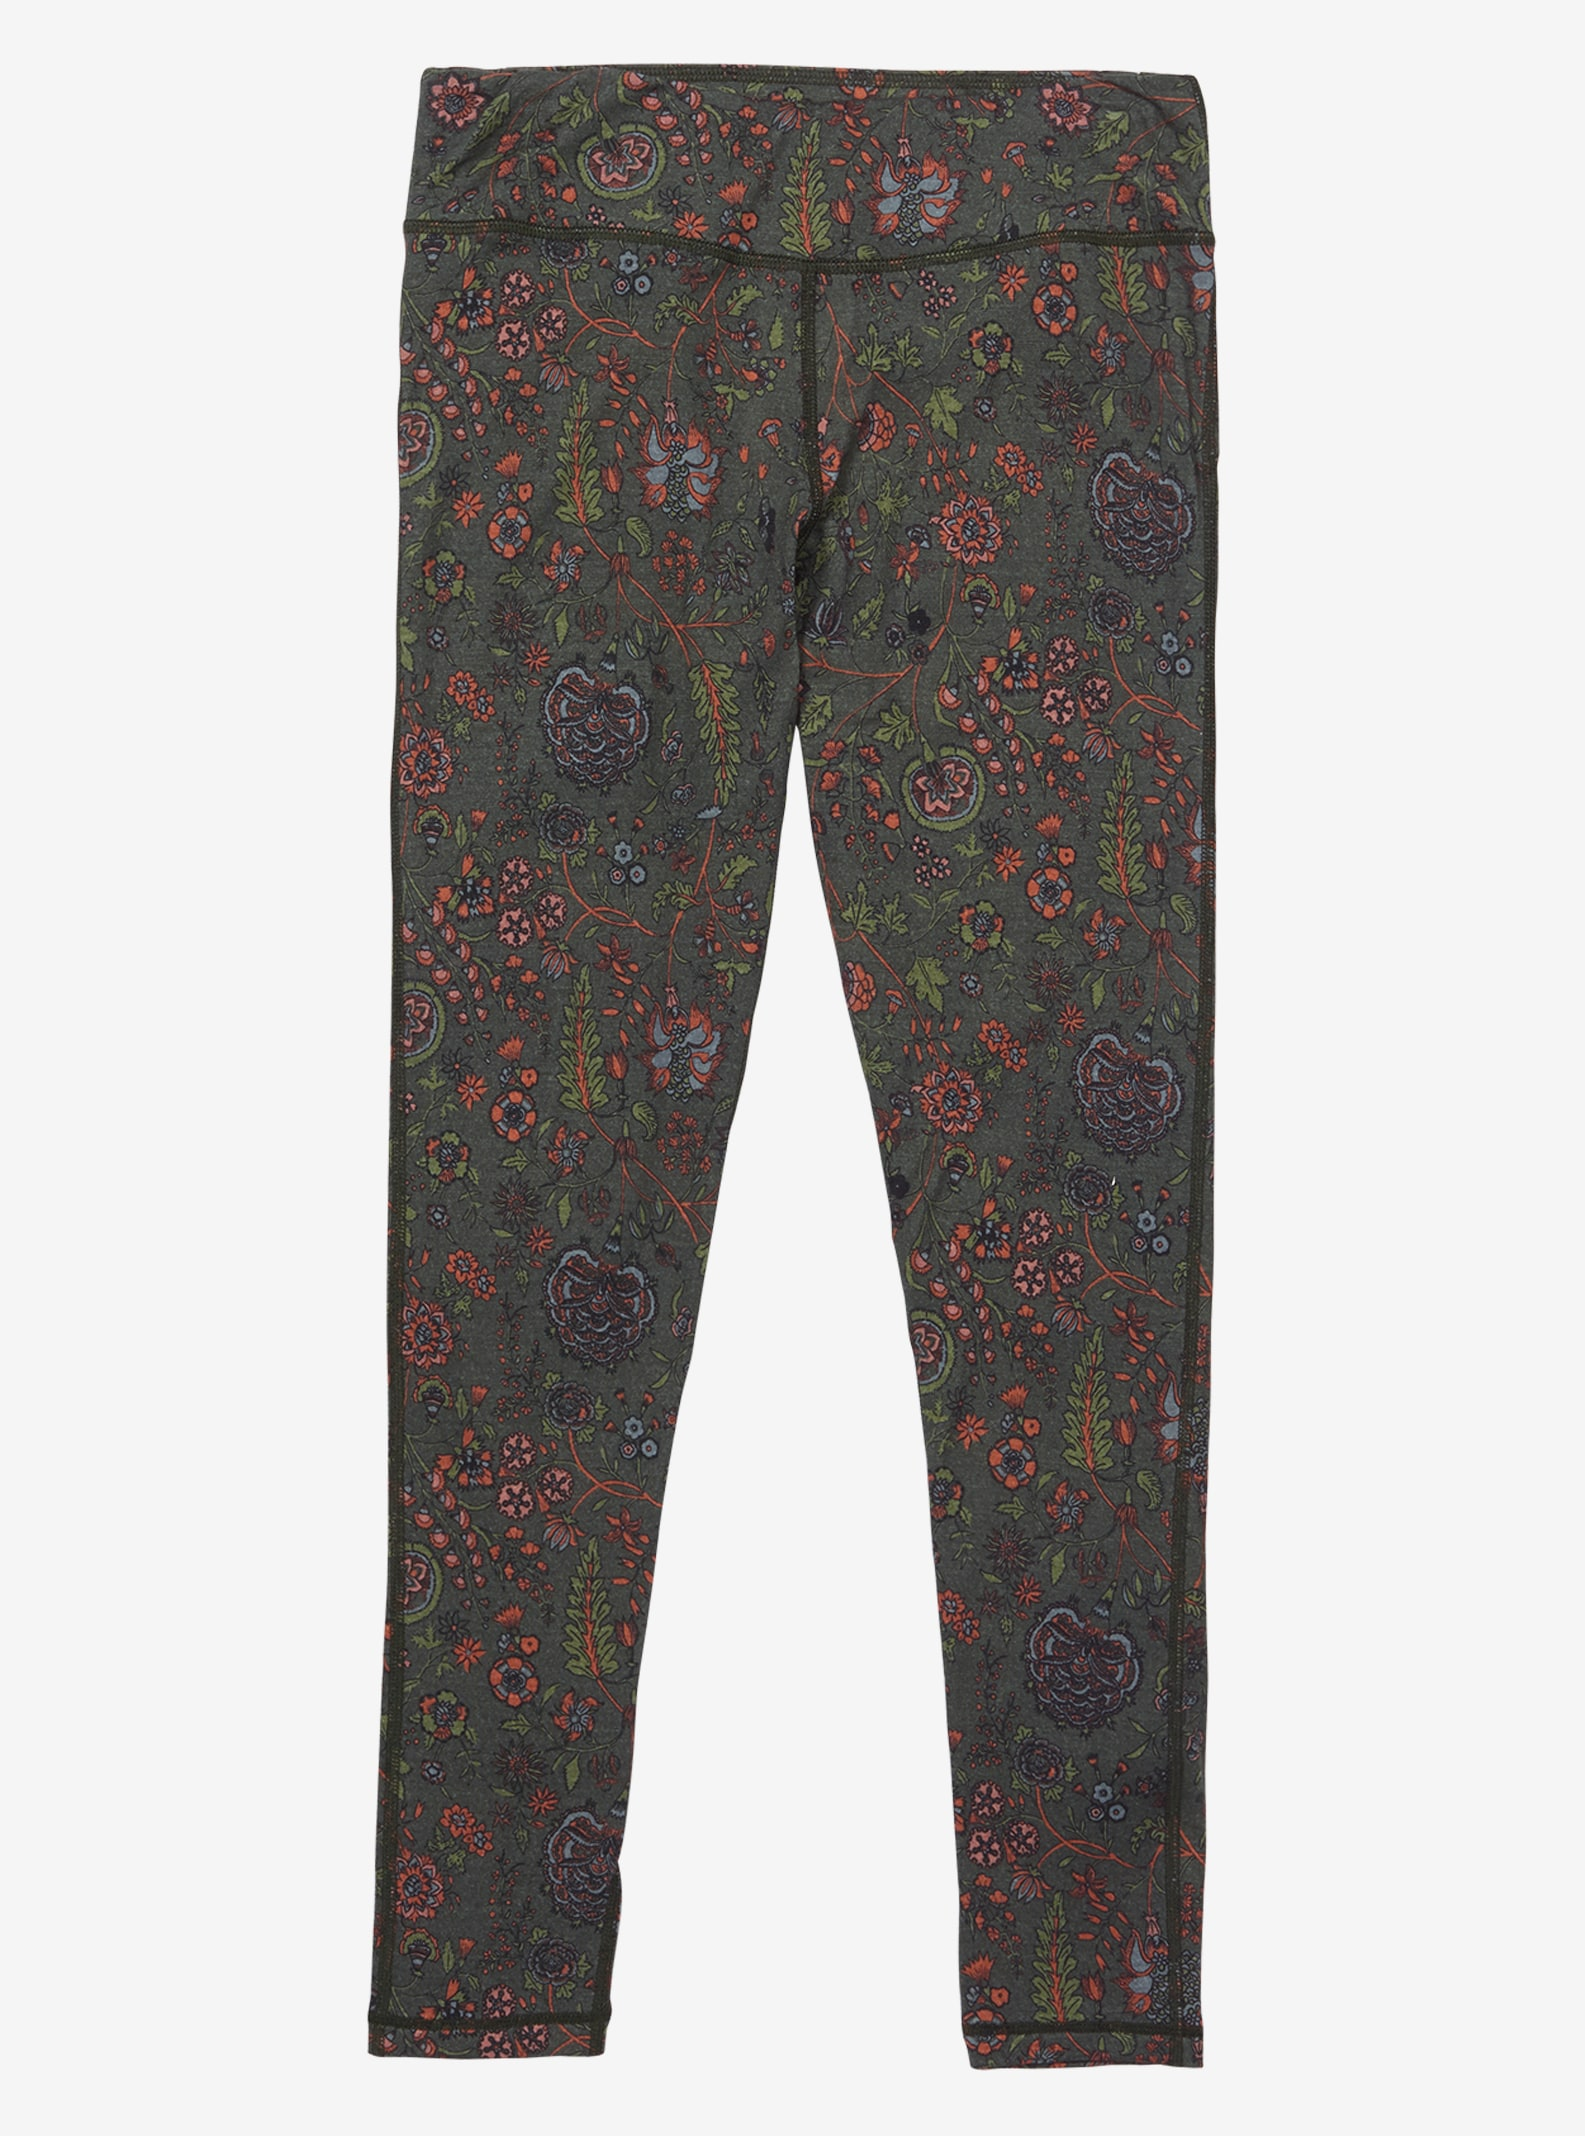 Women's Burton Midweight Base Layer Merino Pant shown in Garden Print